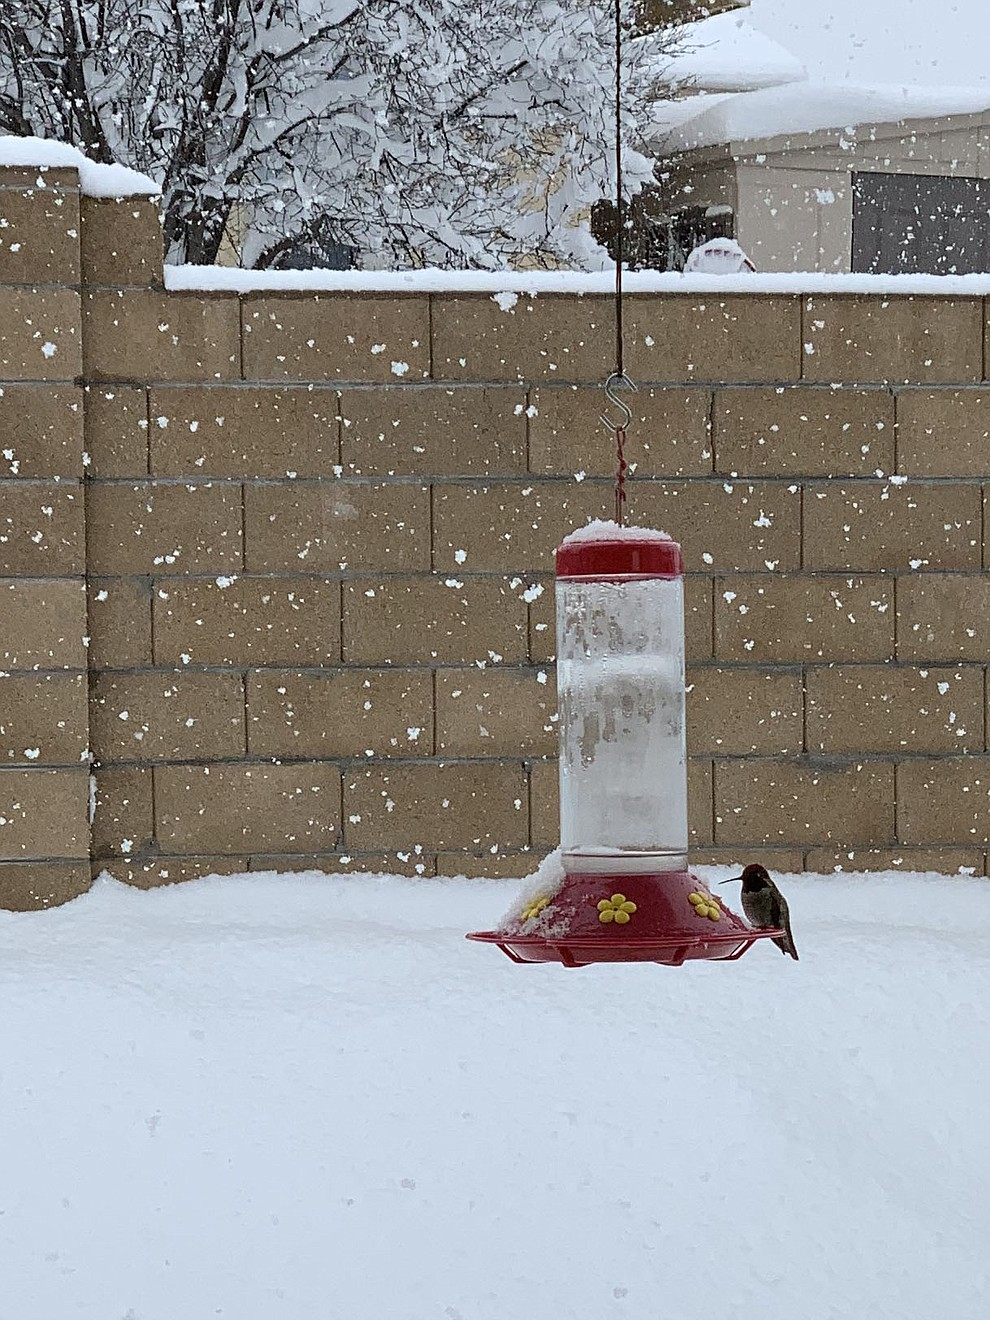 Dana & Wendy Tabbart's back yard, of hummingbird at feeder in the snow yesterday...is just precious. He has been doing this all winter...a hardy little guy for sure!